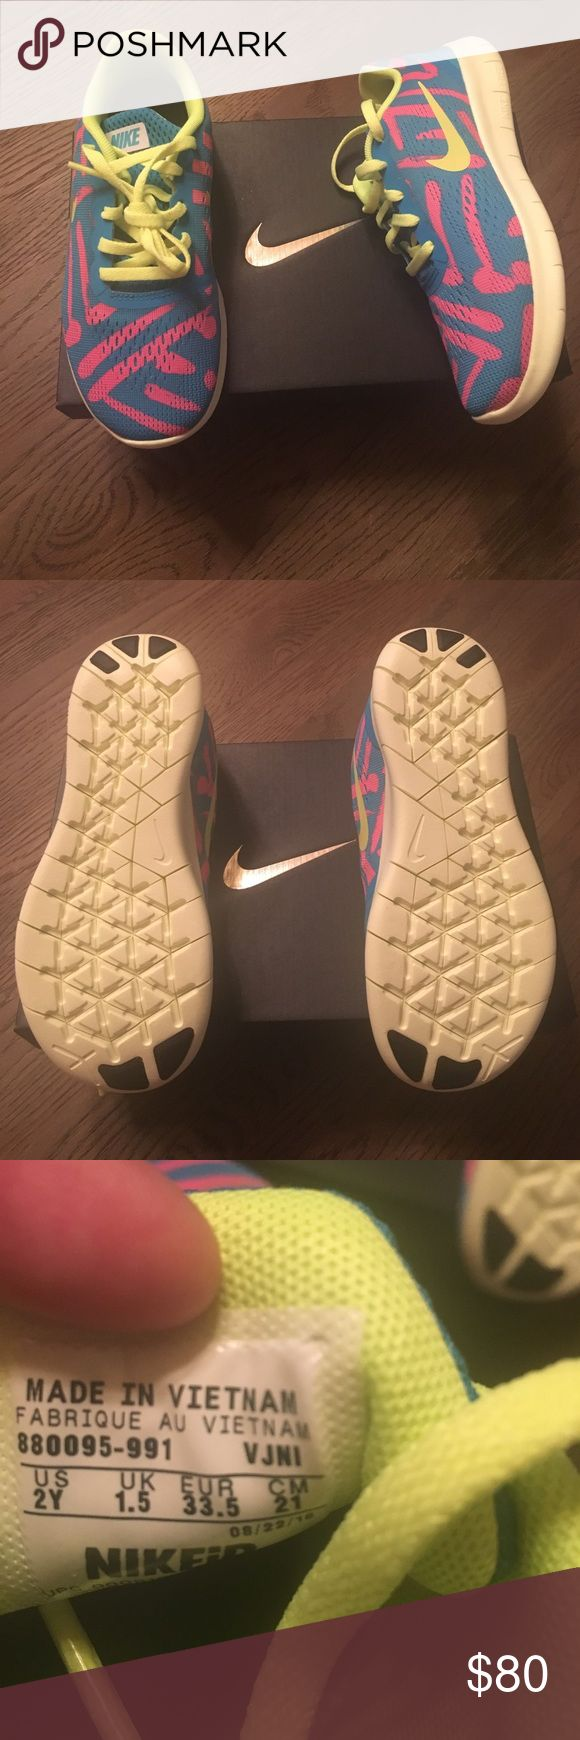 Girls NIKEID shoes. Brand new, never worn. Sz 2Y Girls NIKEID shoes. Brand new, never worn. Sz 2Y Nike Shoes Sneakers